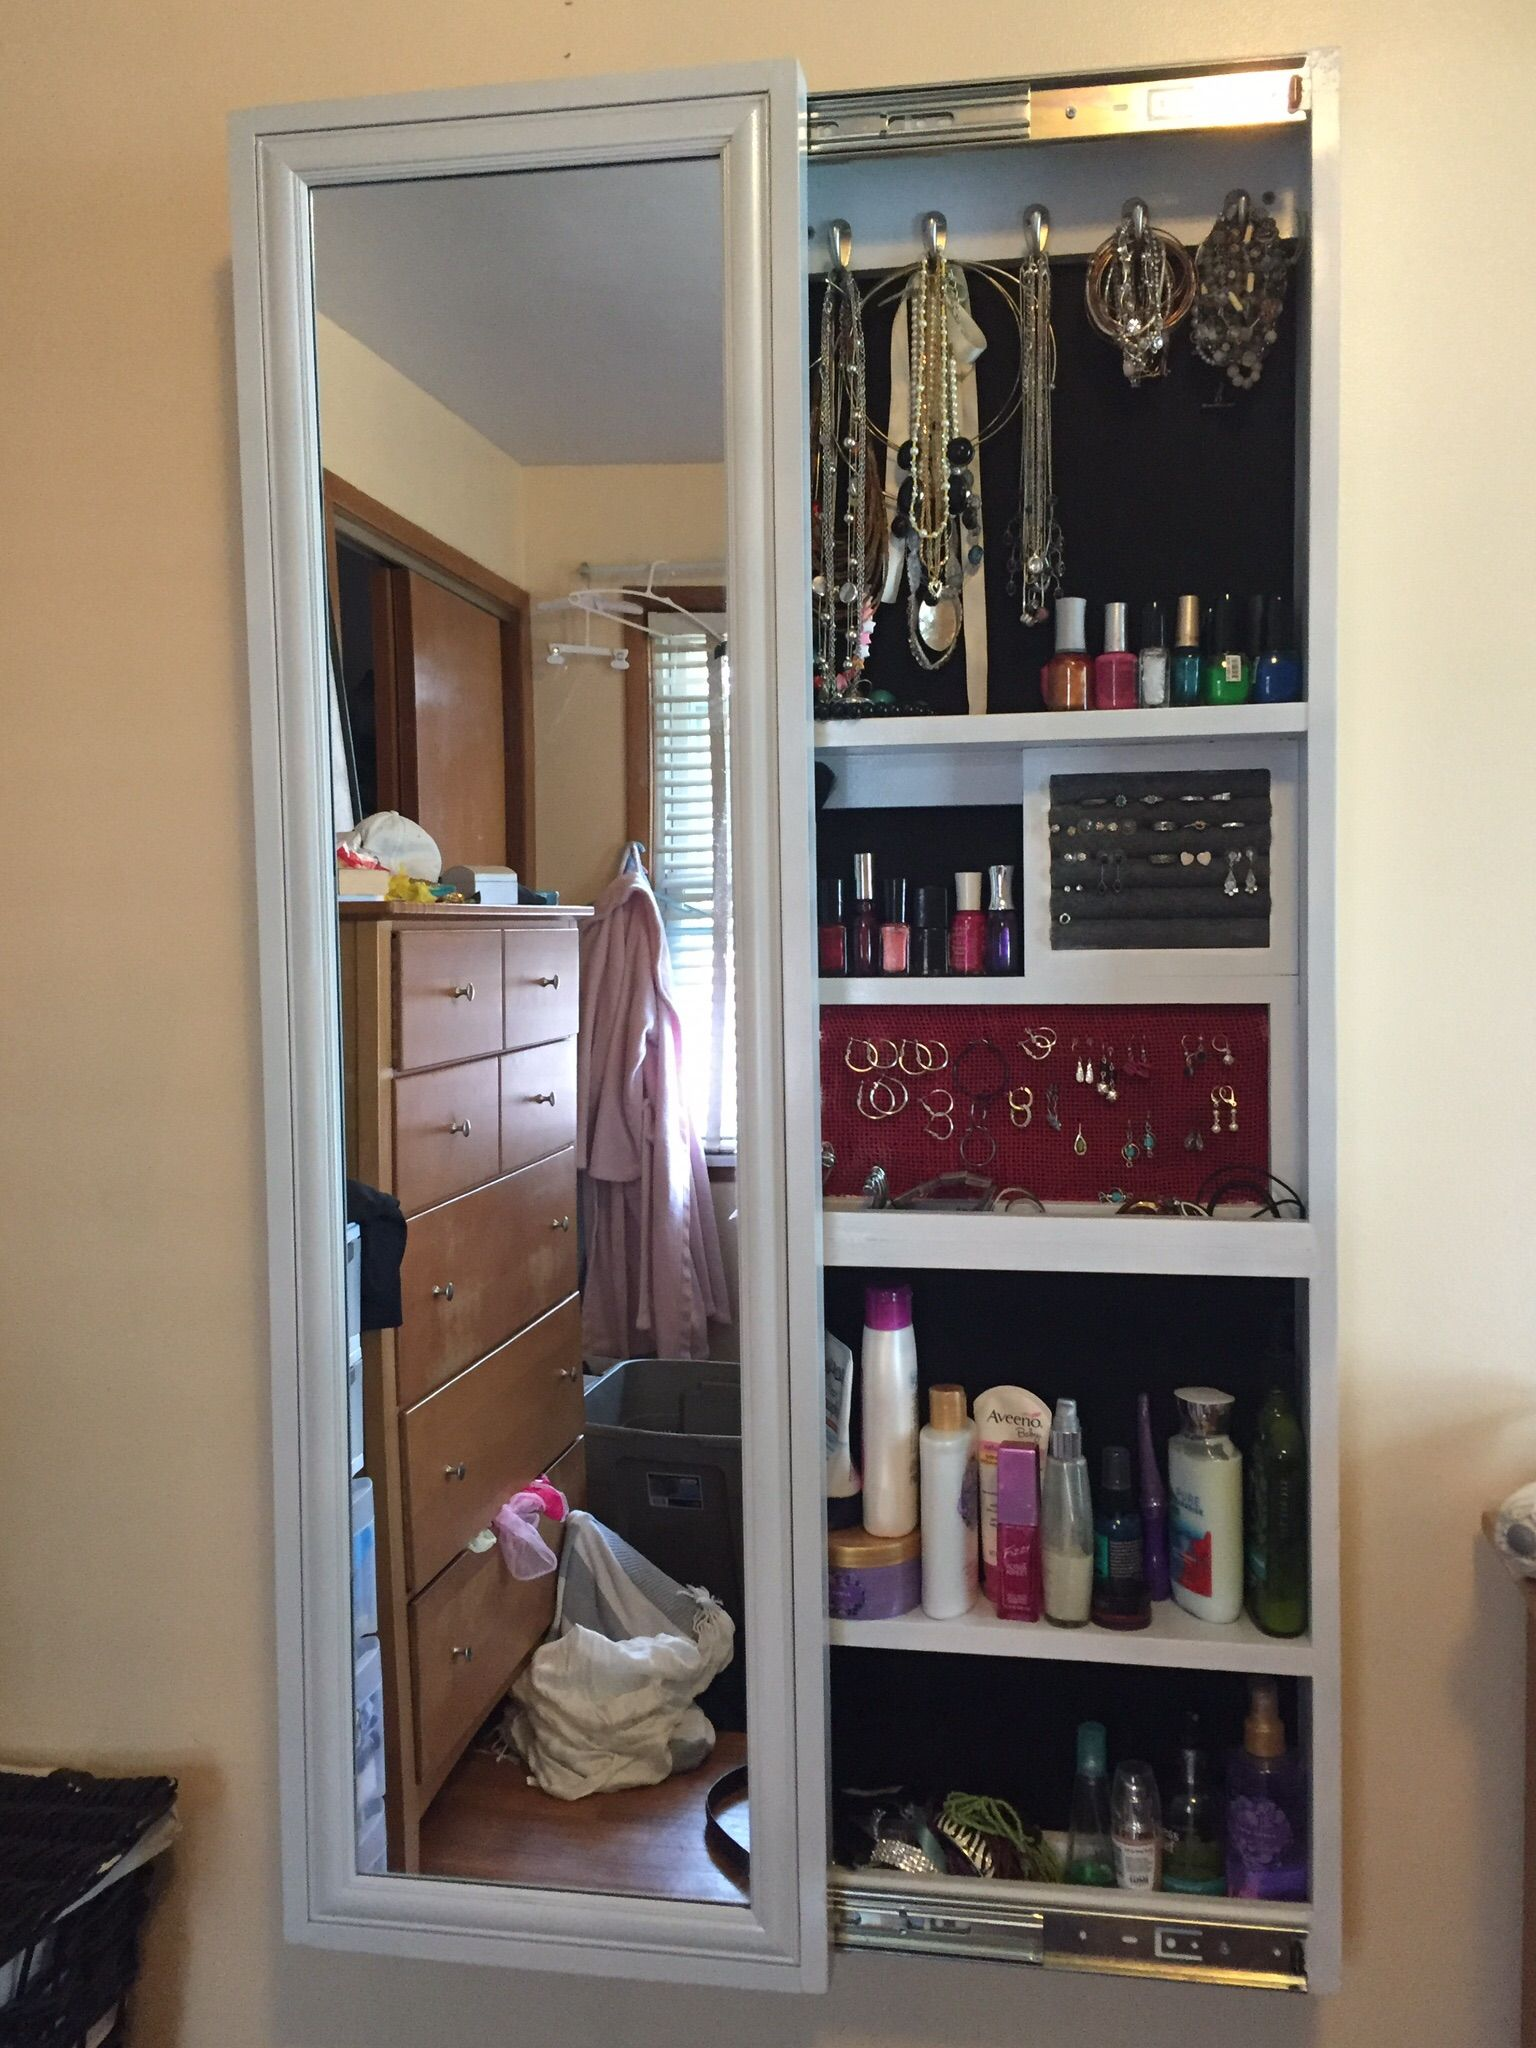 JewelryMakeup Storage Cabinet Do It Yourself Home Projects from